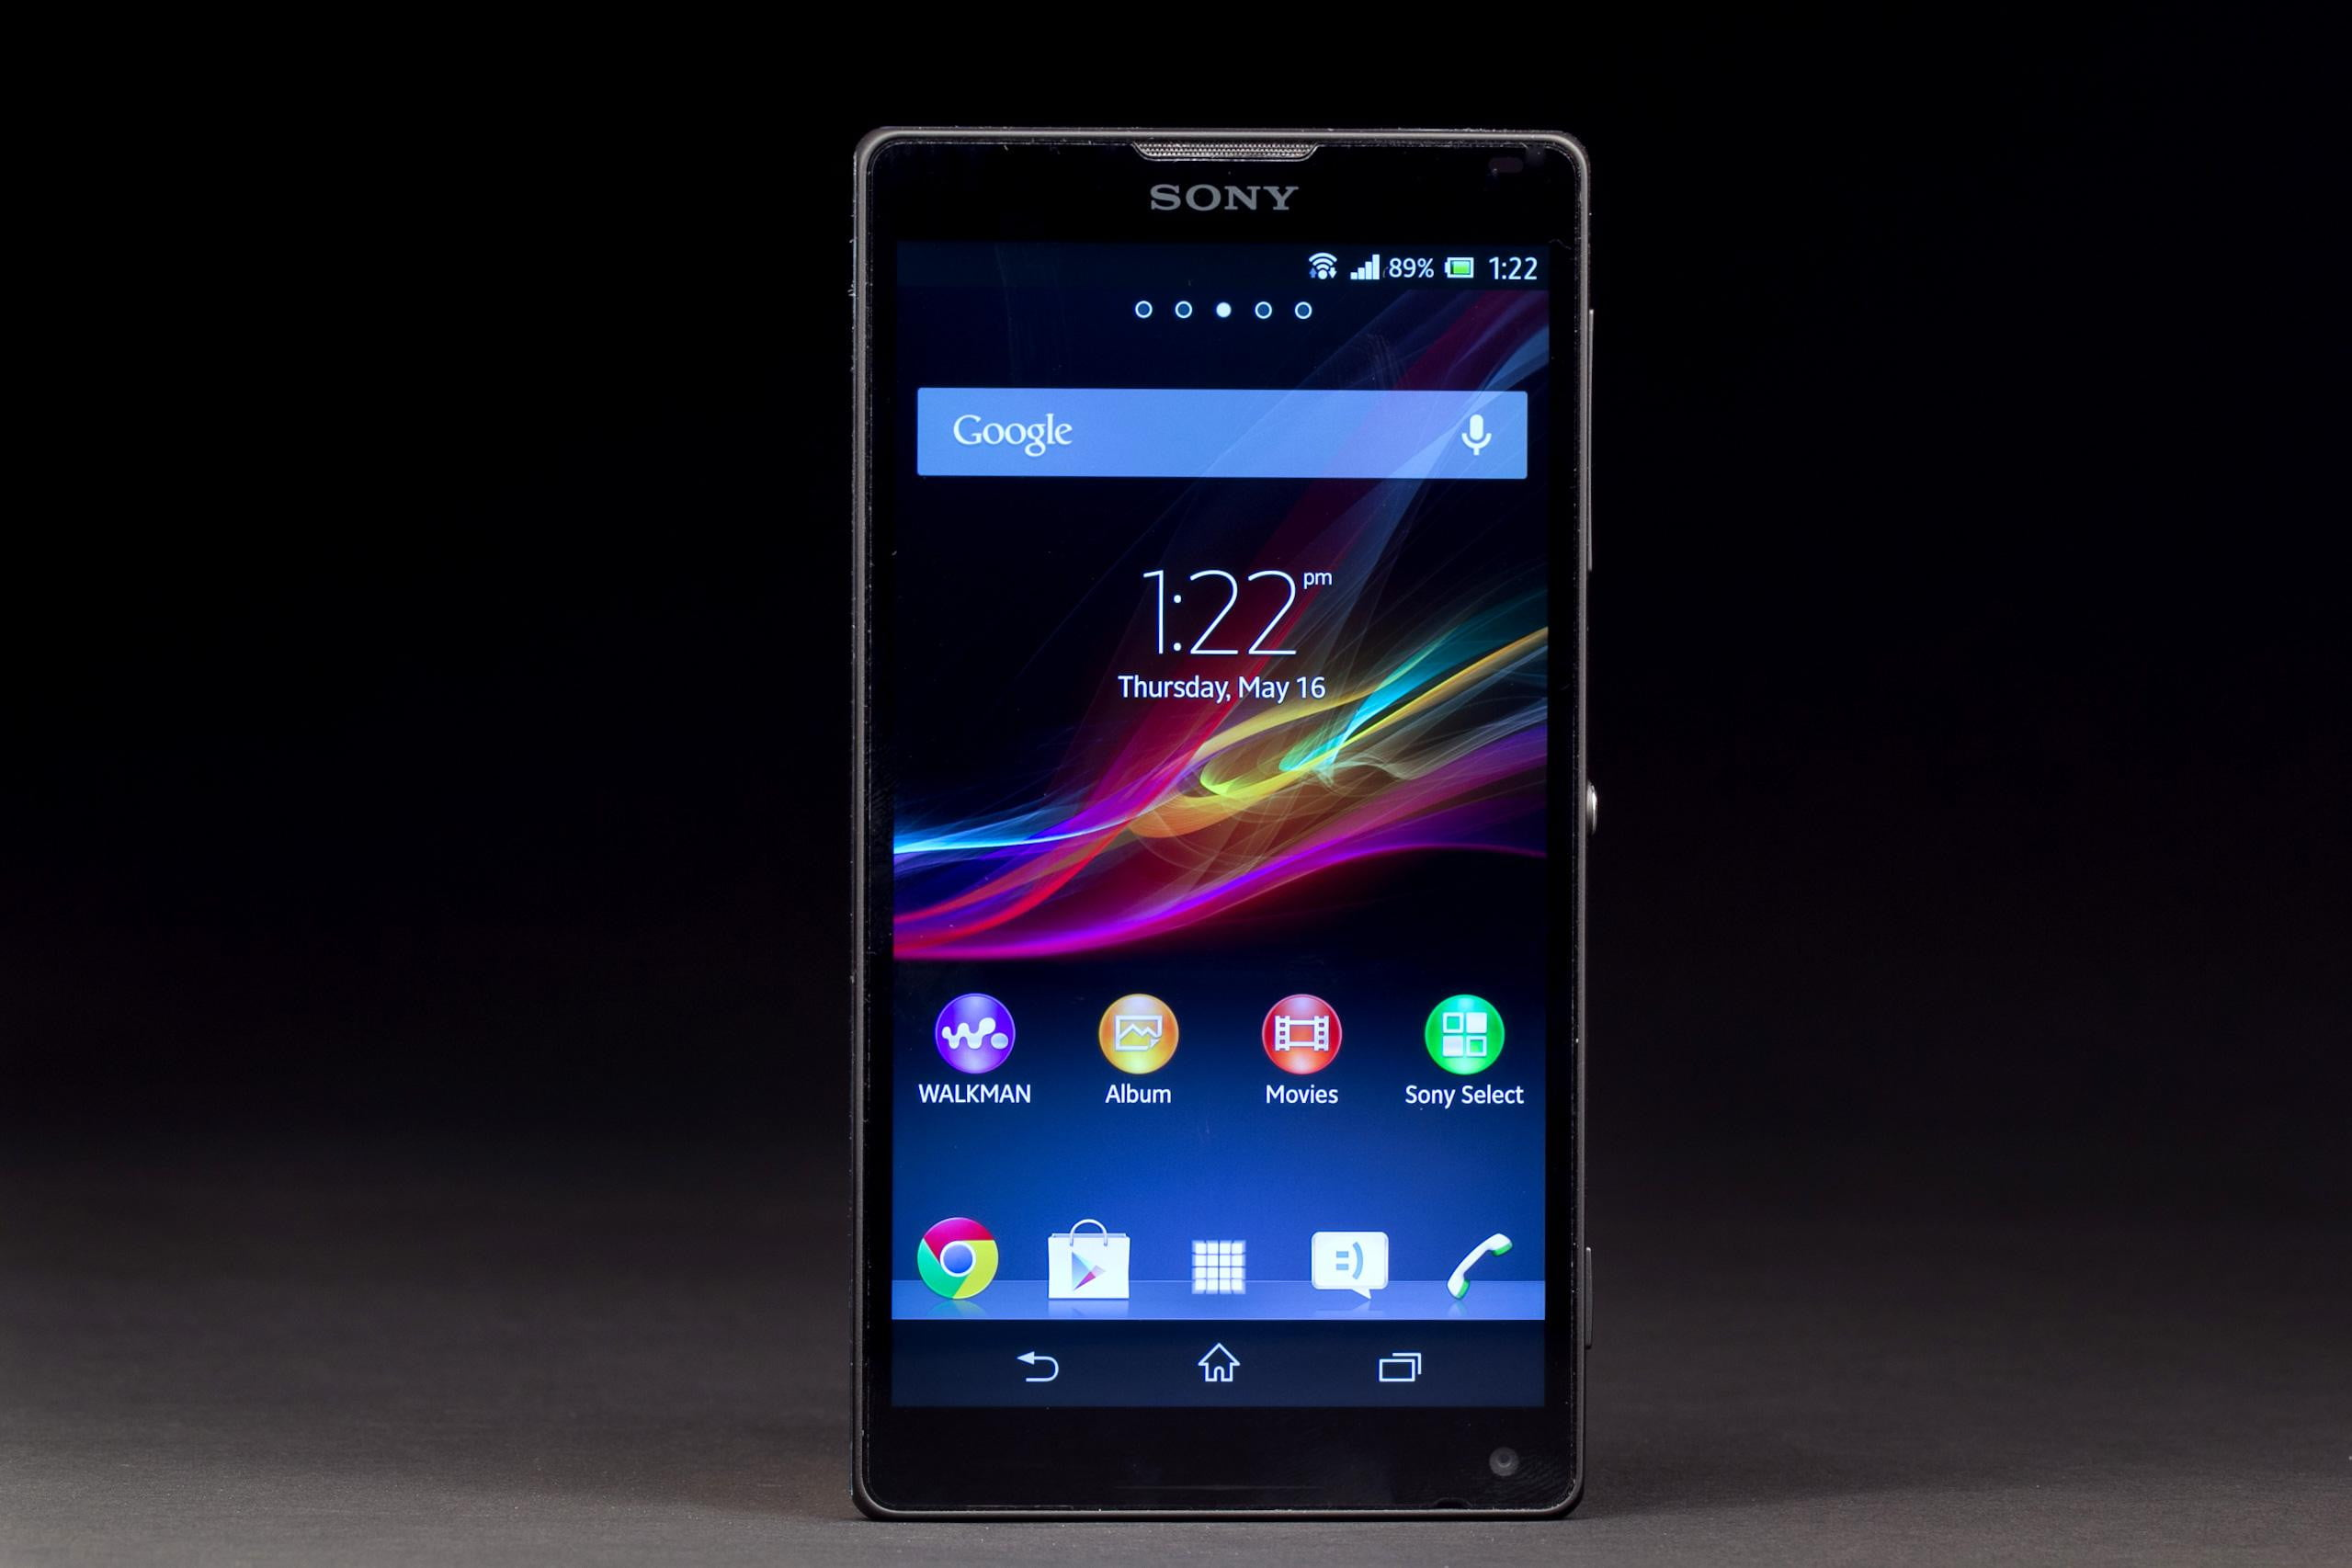 Sony Xperia ZL Review | Digital Trends